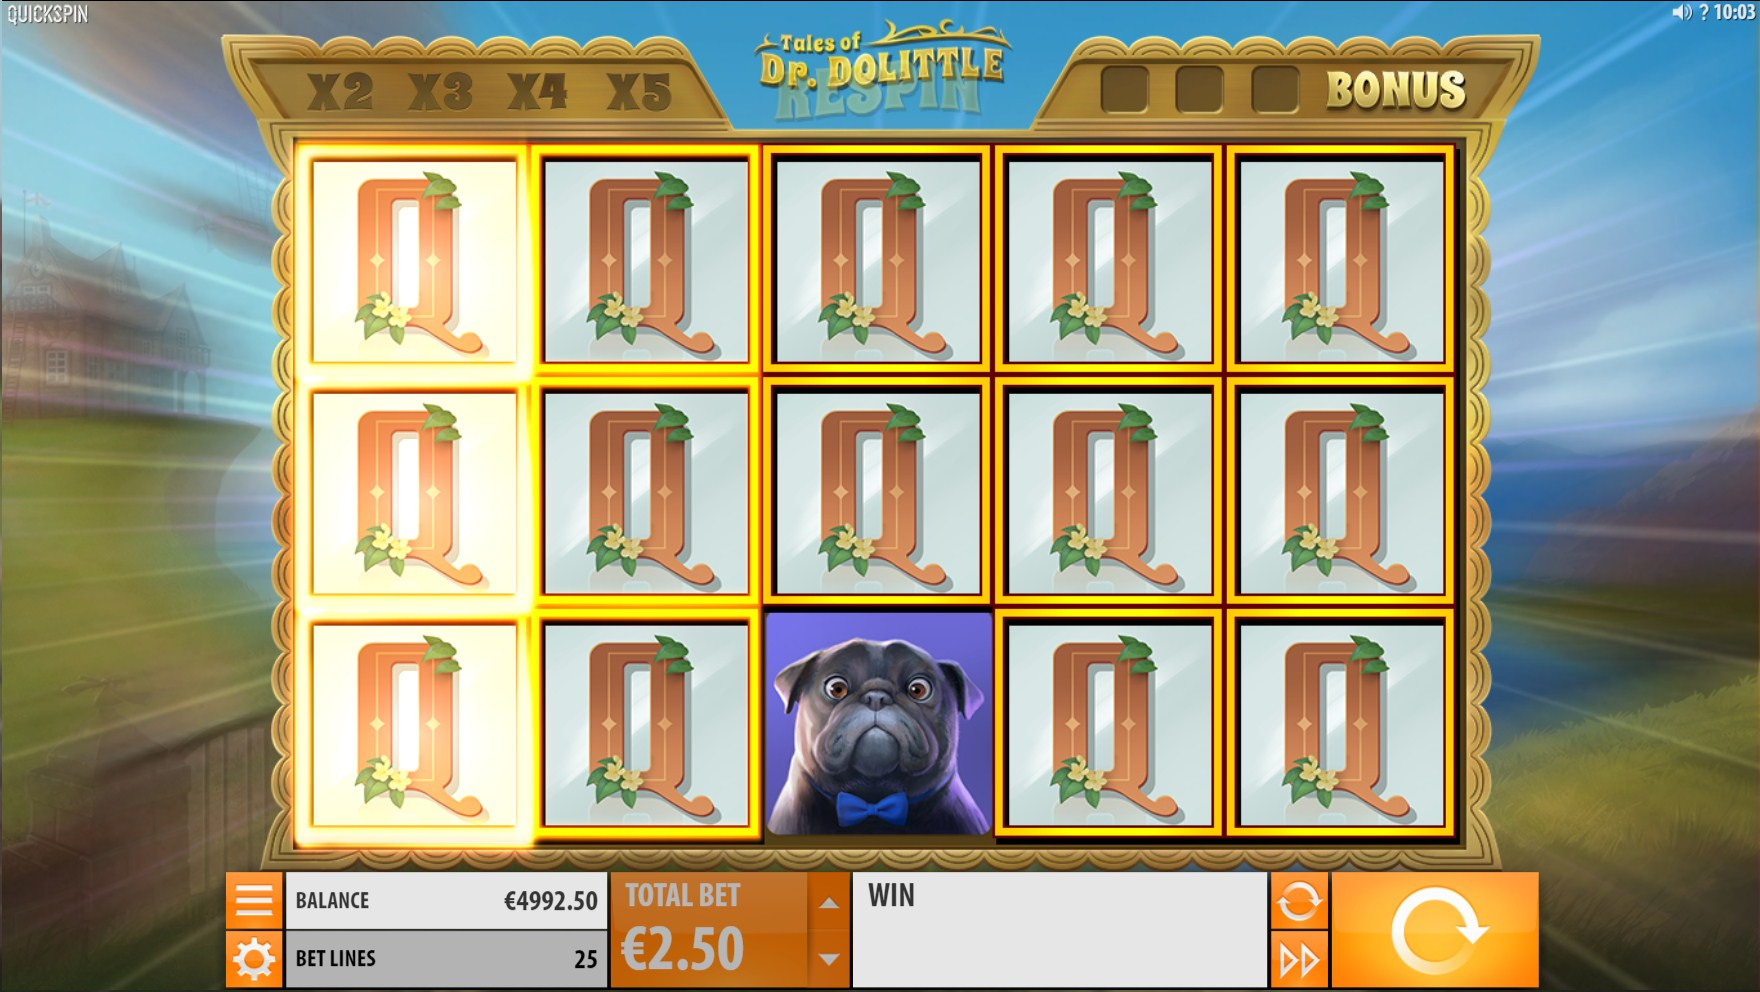 Tales of Dr. Doolittle Slot Gameplay